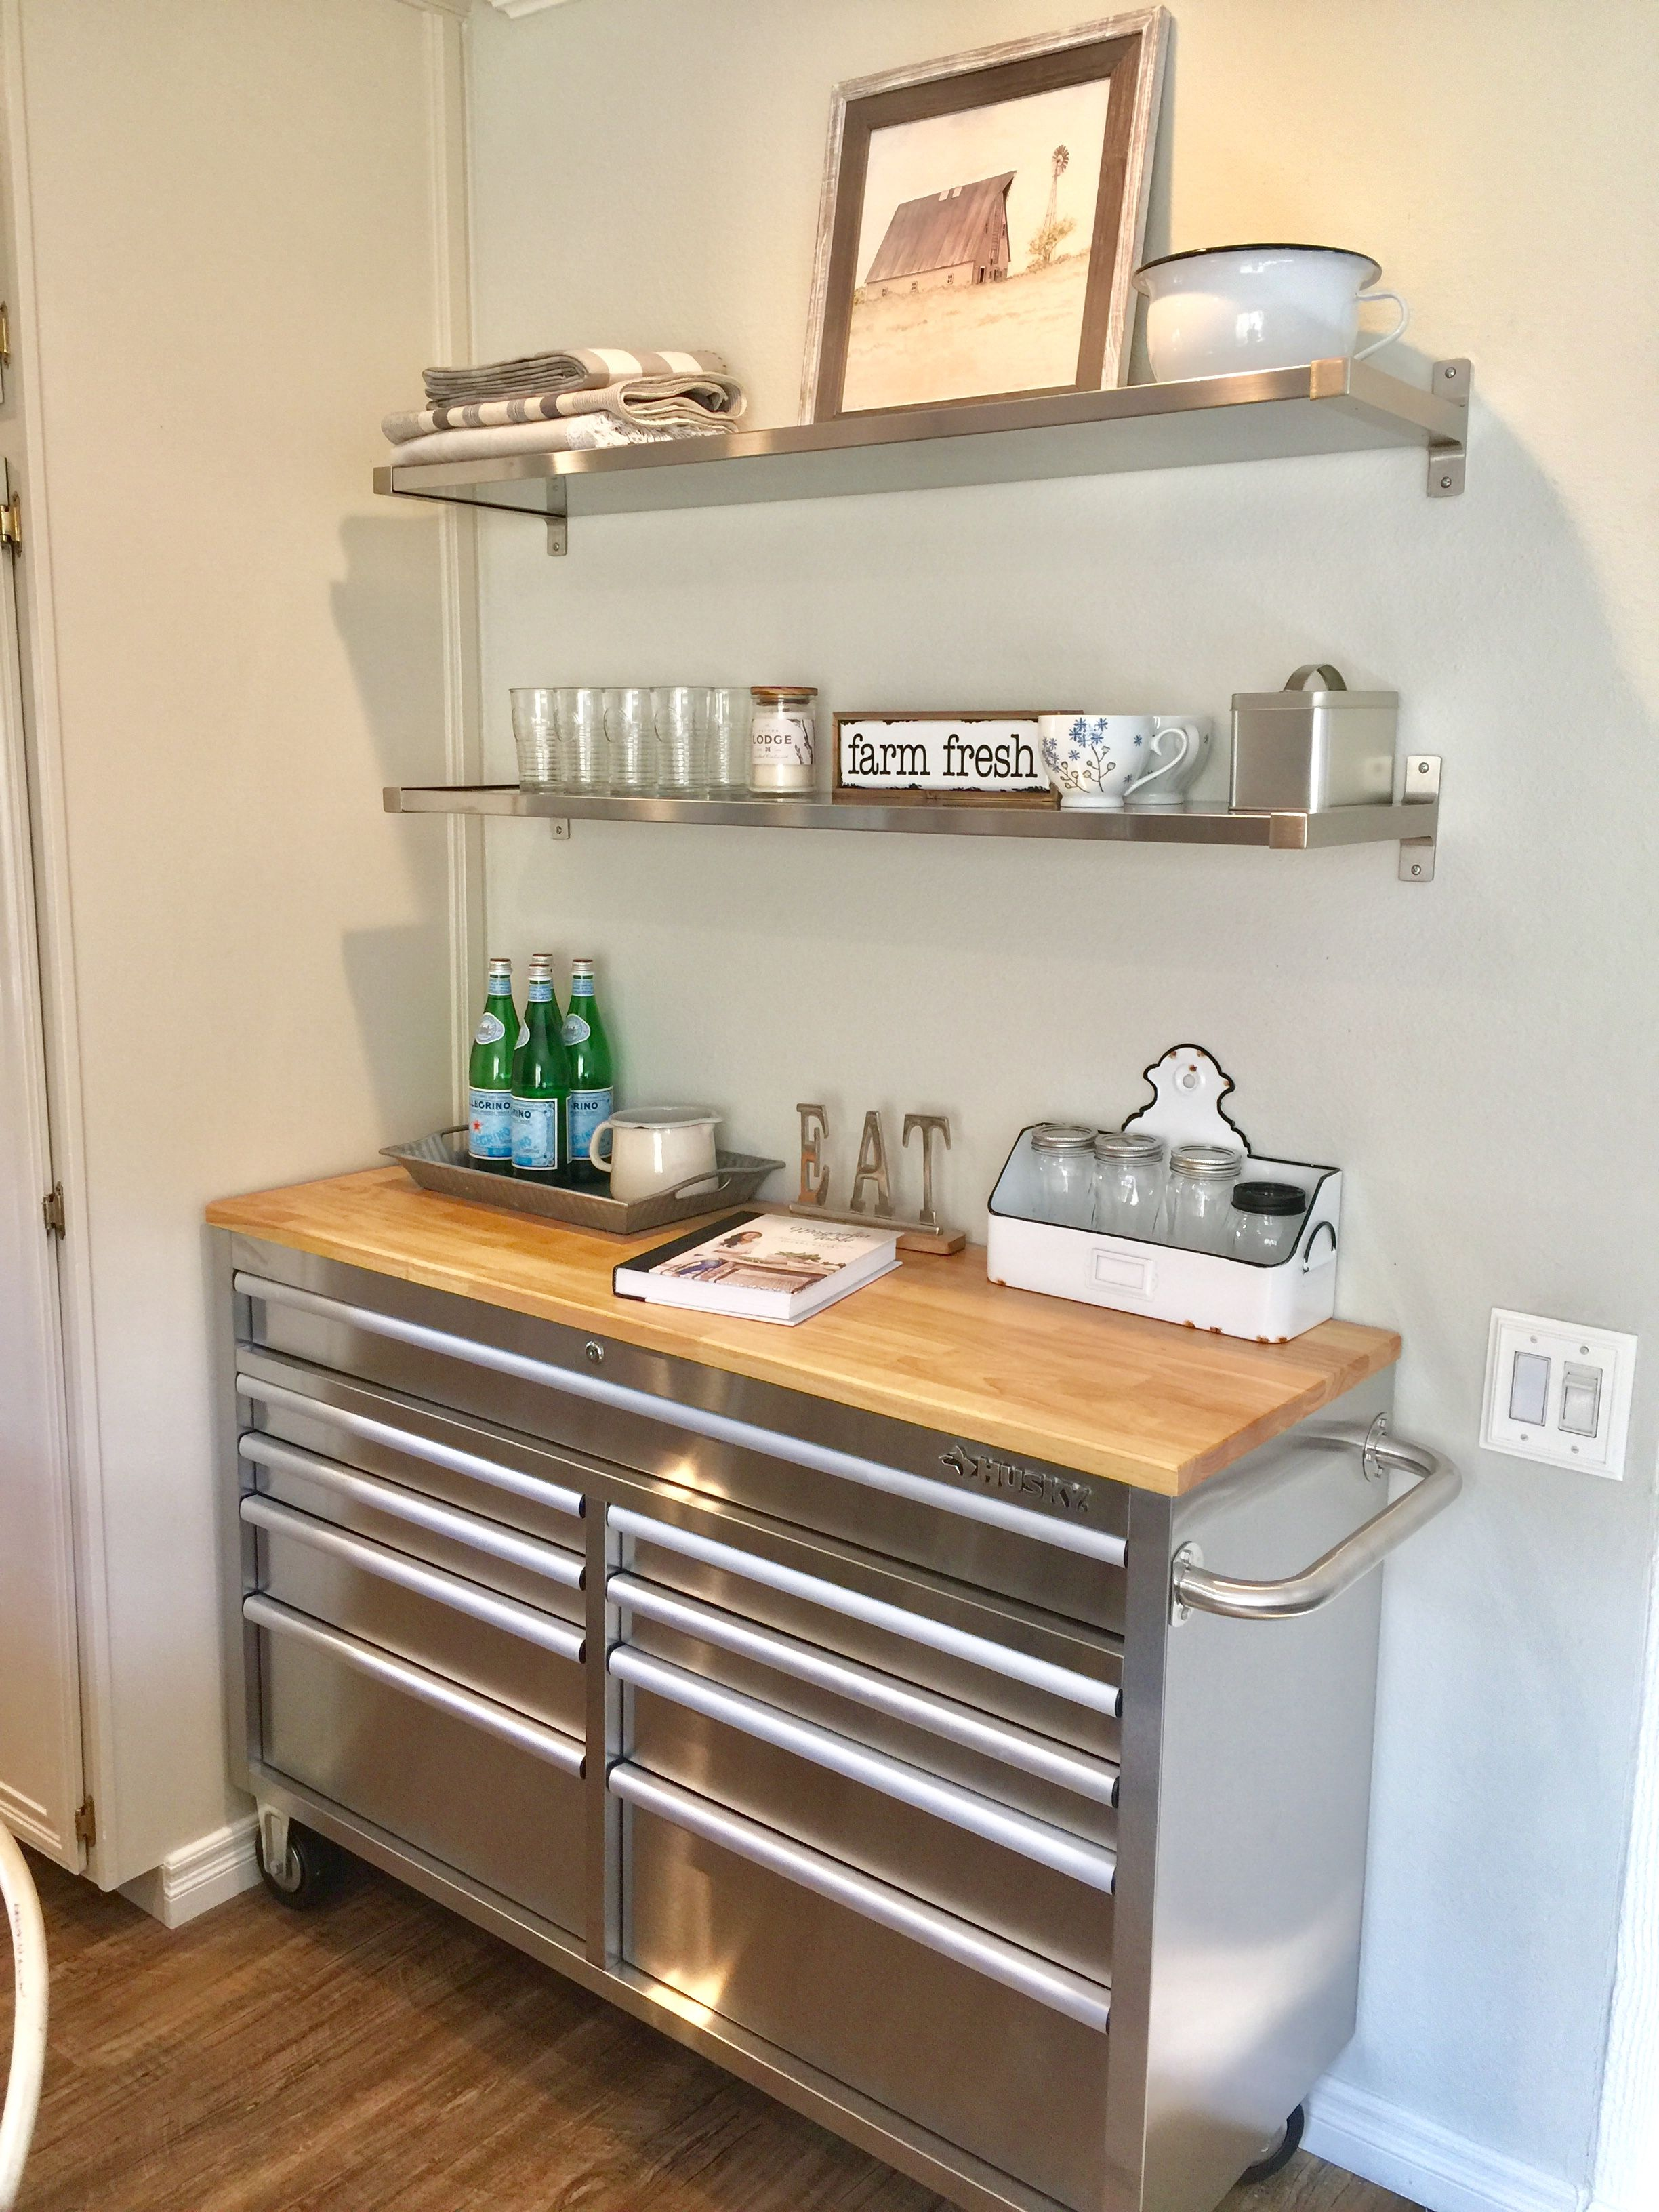 Kitchen Storage With A Husky Tool Chest Kitchen Storage Hacks Tool Chest Kitchen Remodel